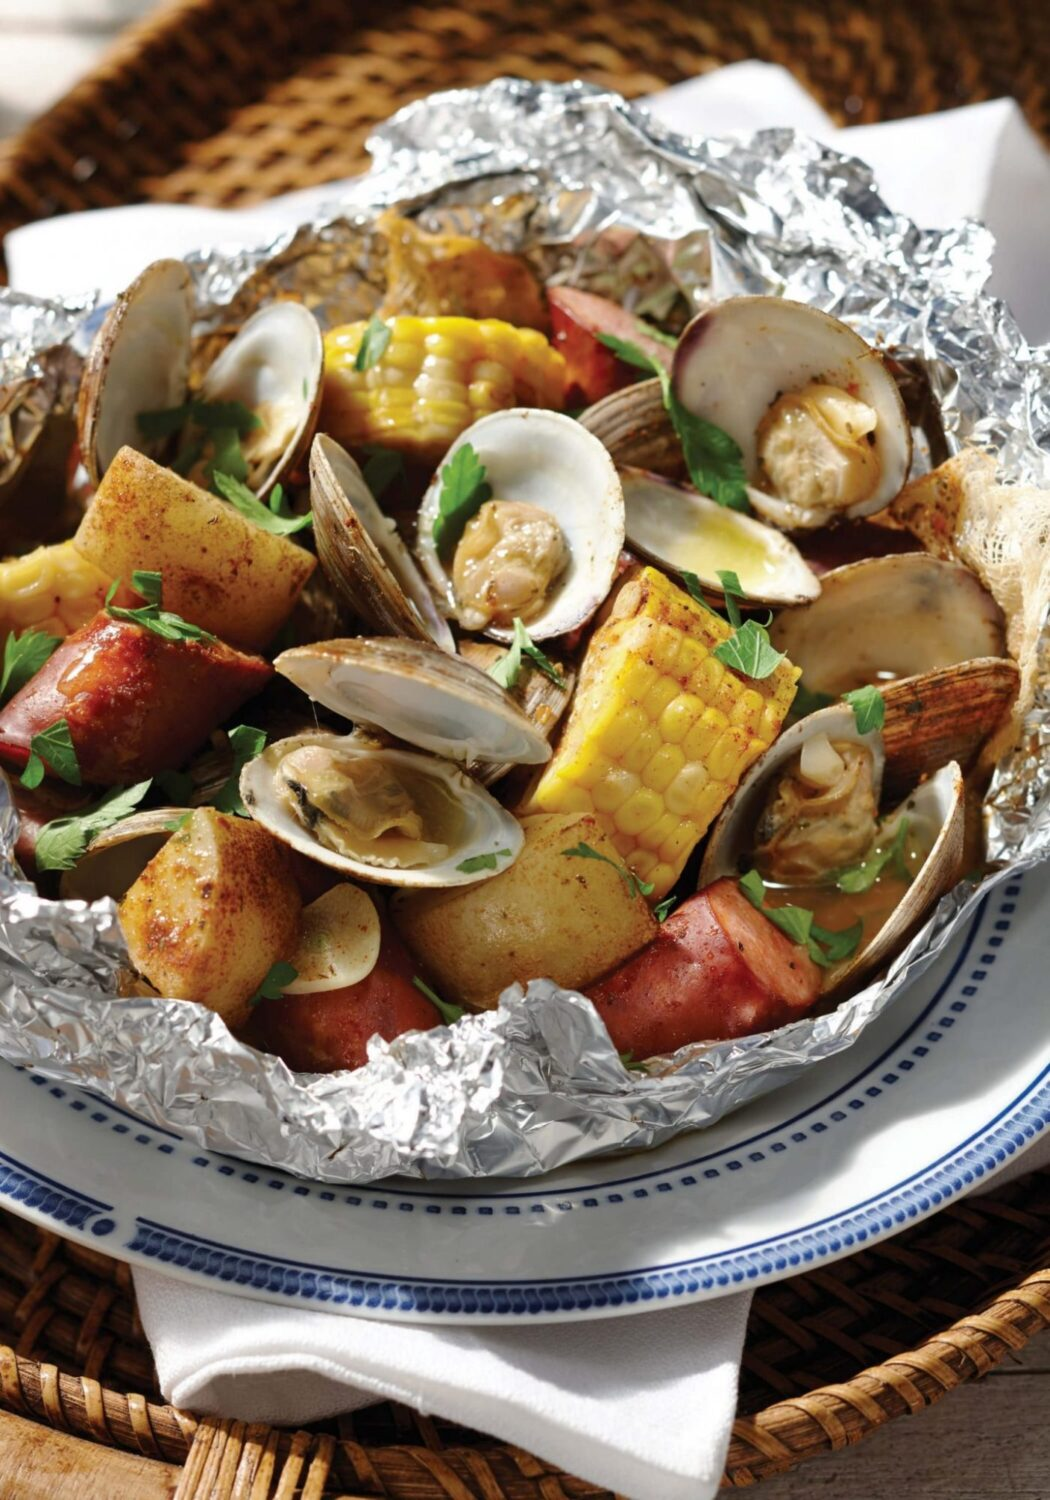 Easy Clam Bake Recipe in a Foil Packet: Ready for the Grill